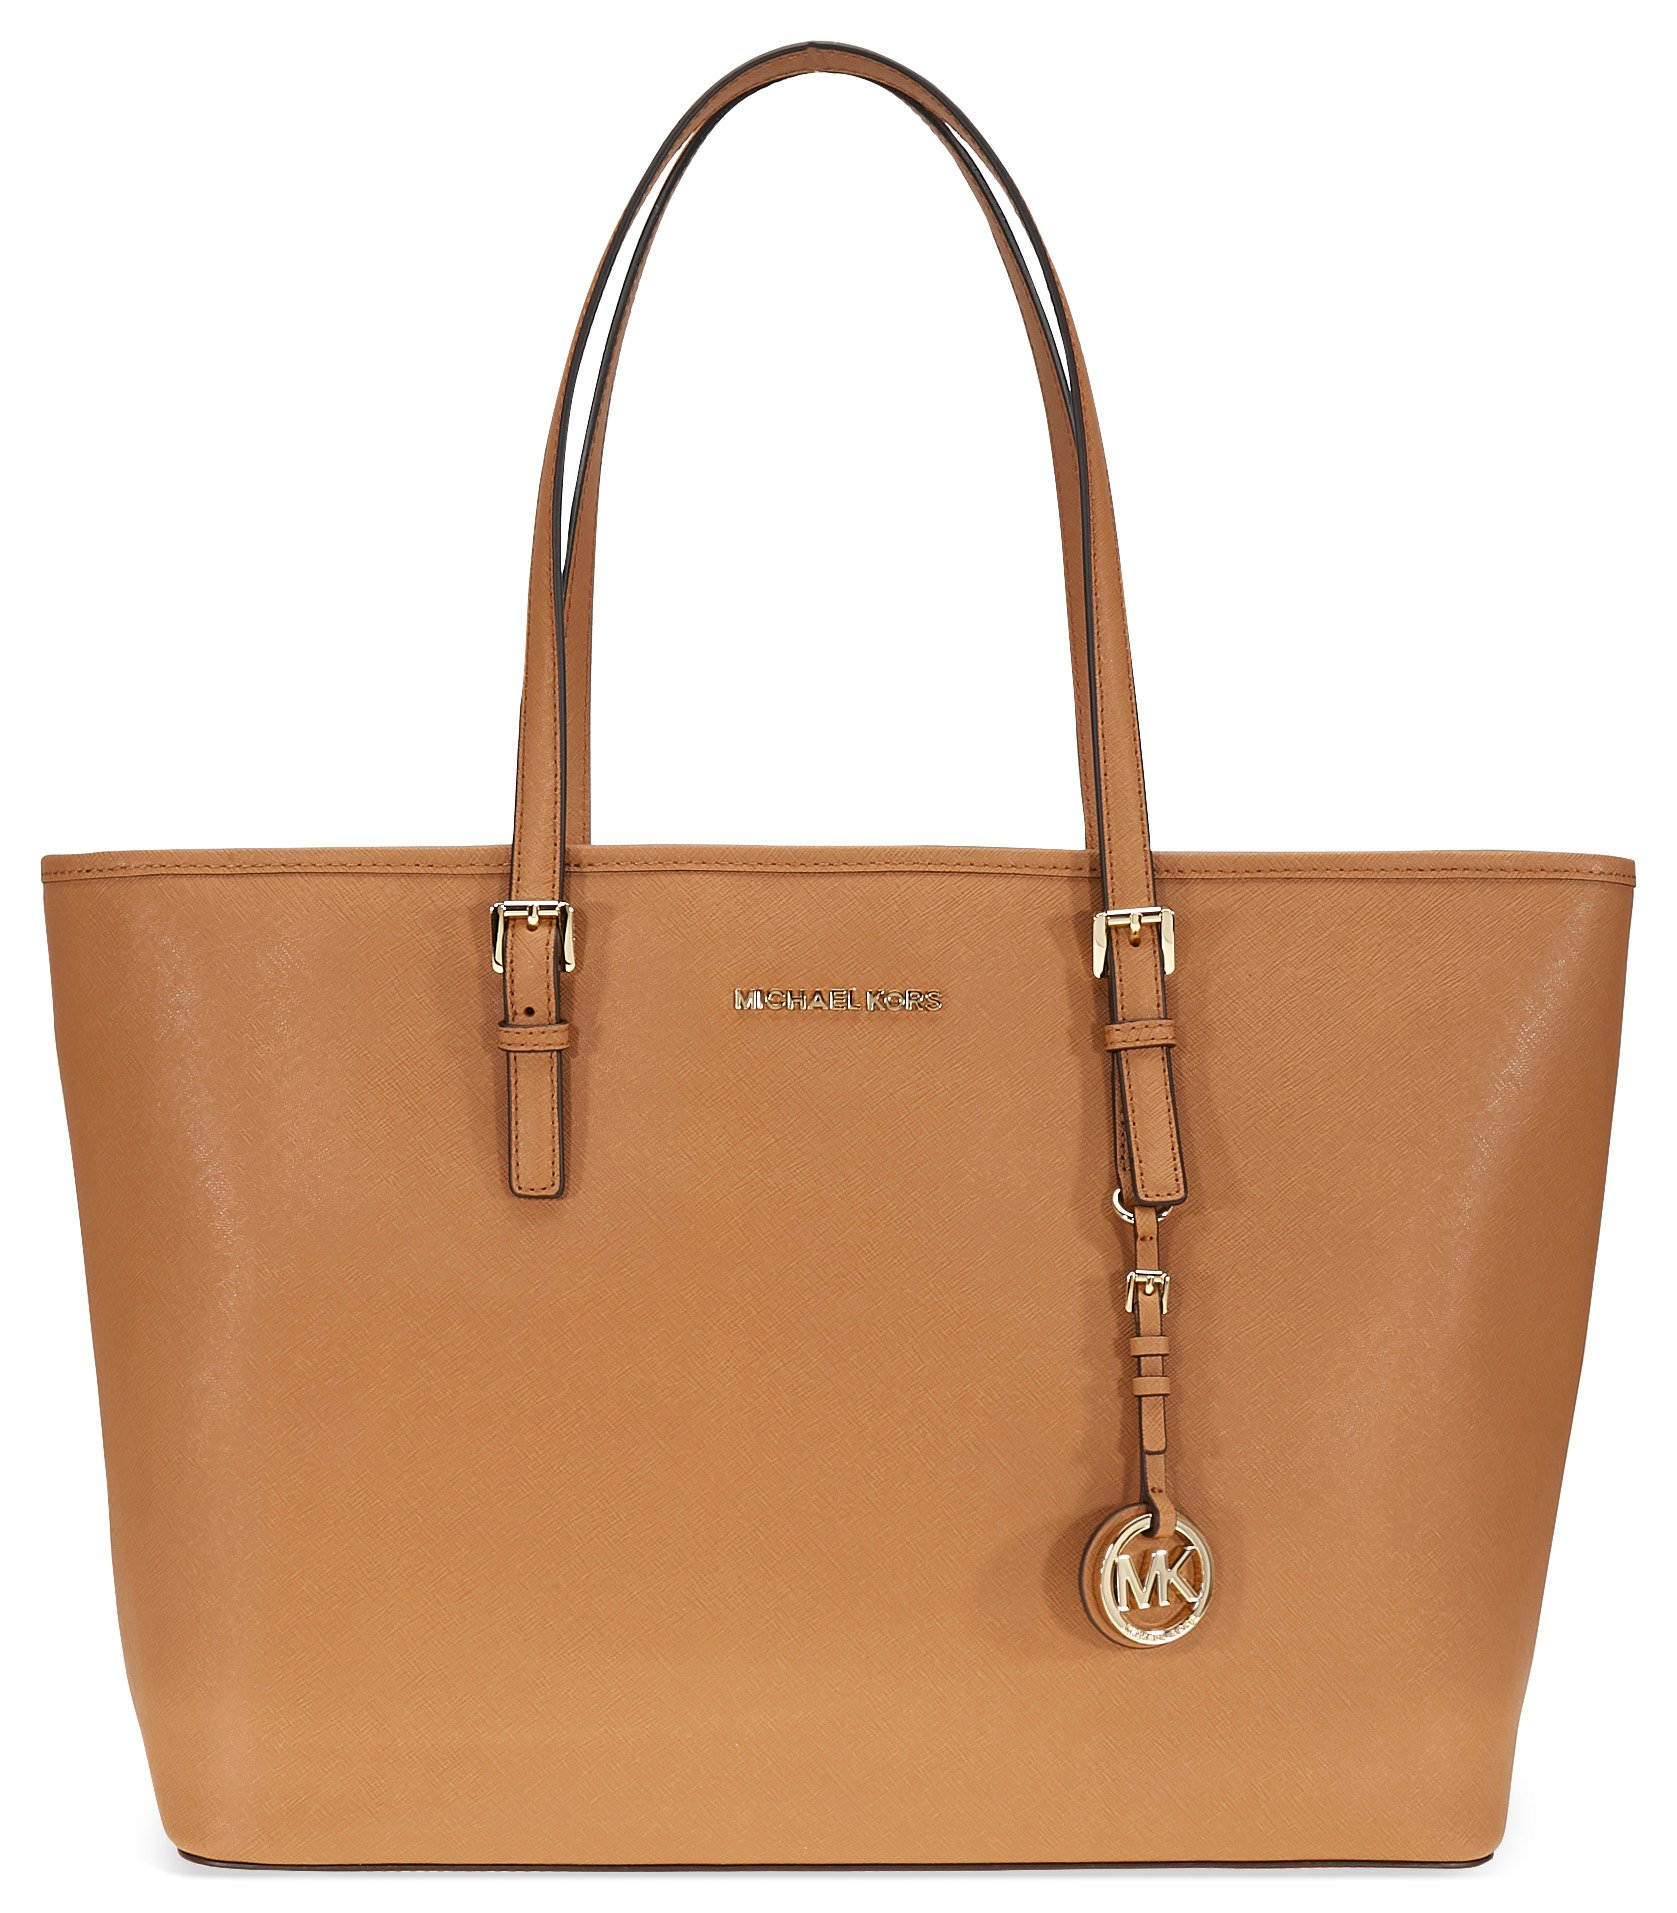 Michael Kors Jet Set Medium Travel Saffiano Leather Tote - Acorn